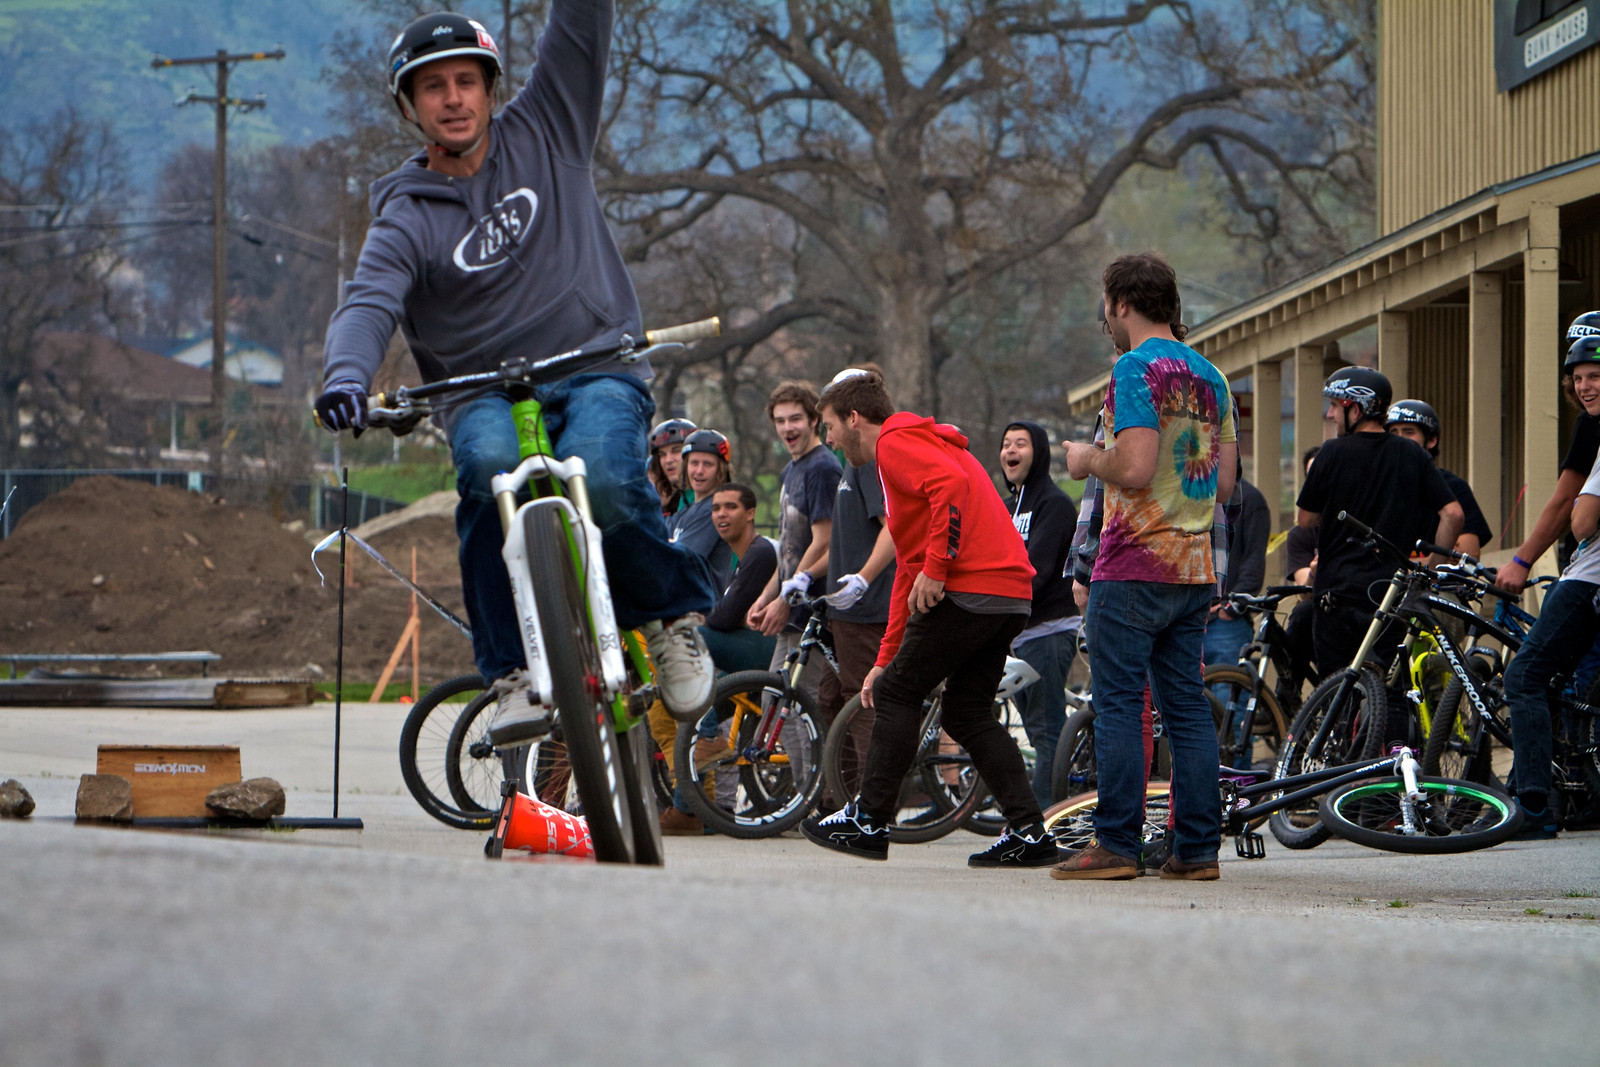 Lopes Stoked on His Distance - corytepper.com - Mountain Biking Pictures - Vital MTB